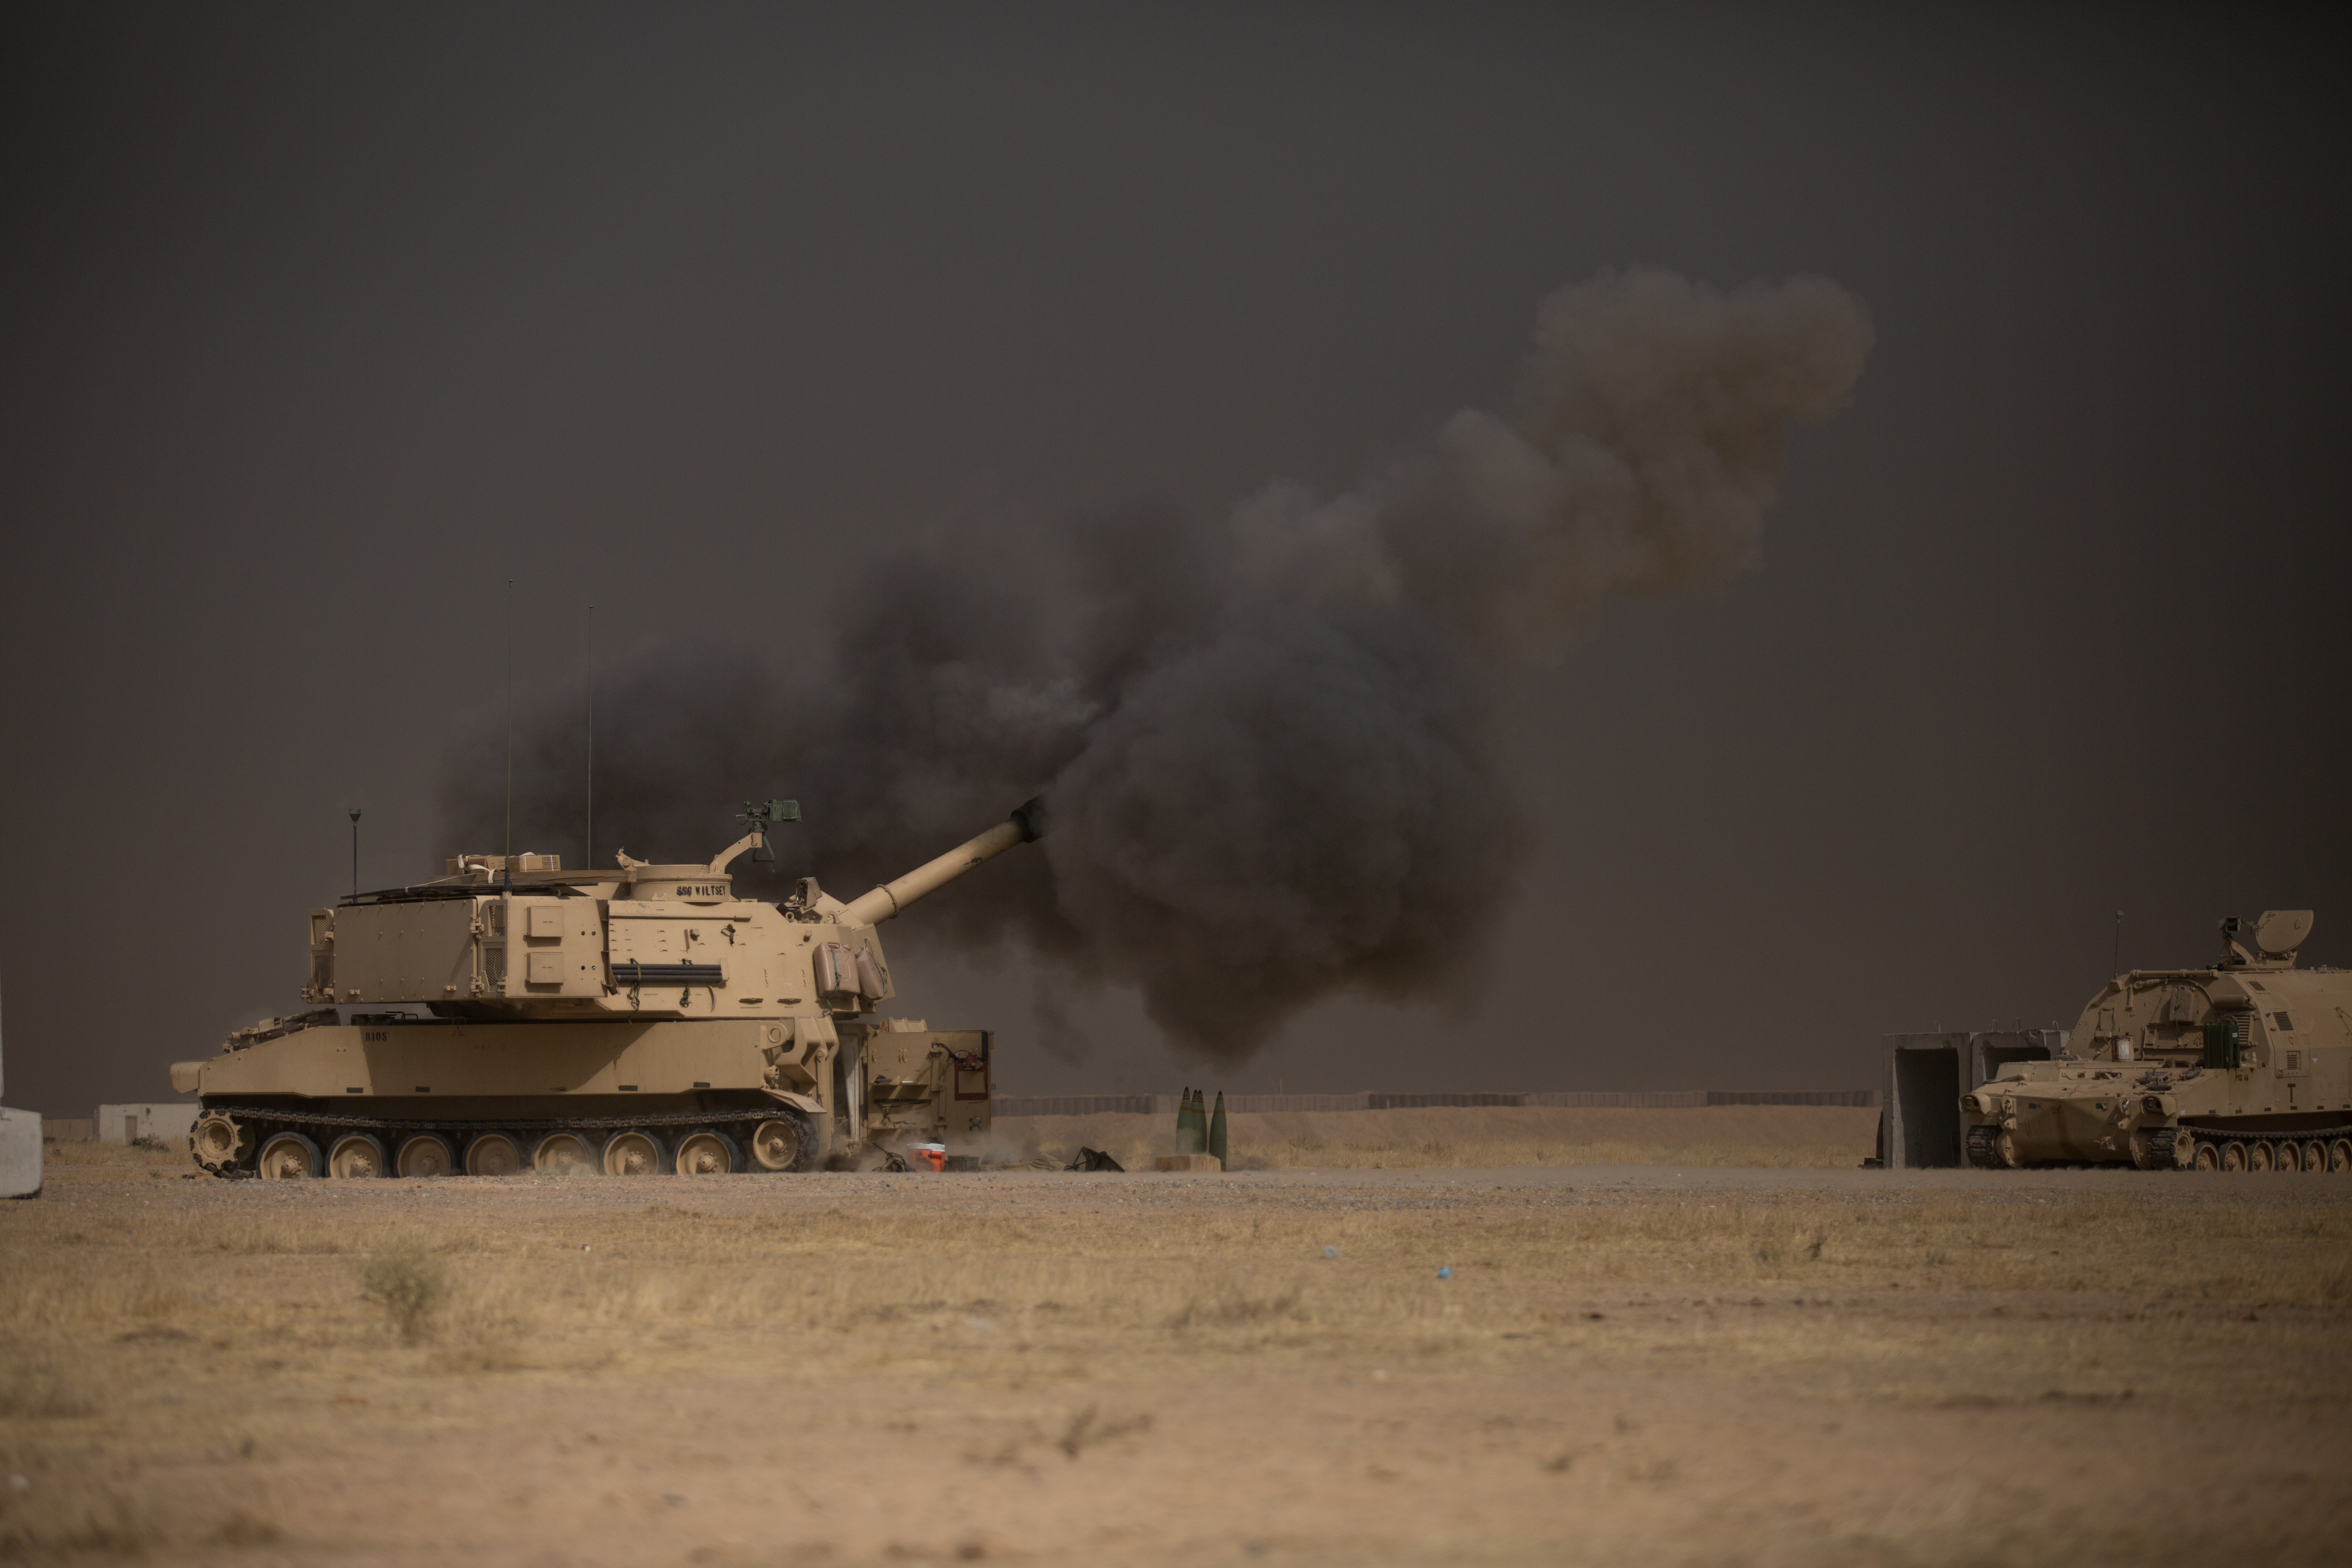 A U.S. Army M109A6 Paladin conducts a fire mission at Qayyarah West, Iraq, in support of the Iraqi security forces' push toward Mosul, Oct. 17, 2016. US Army photo.